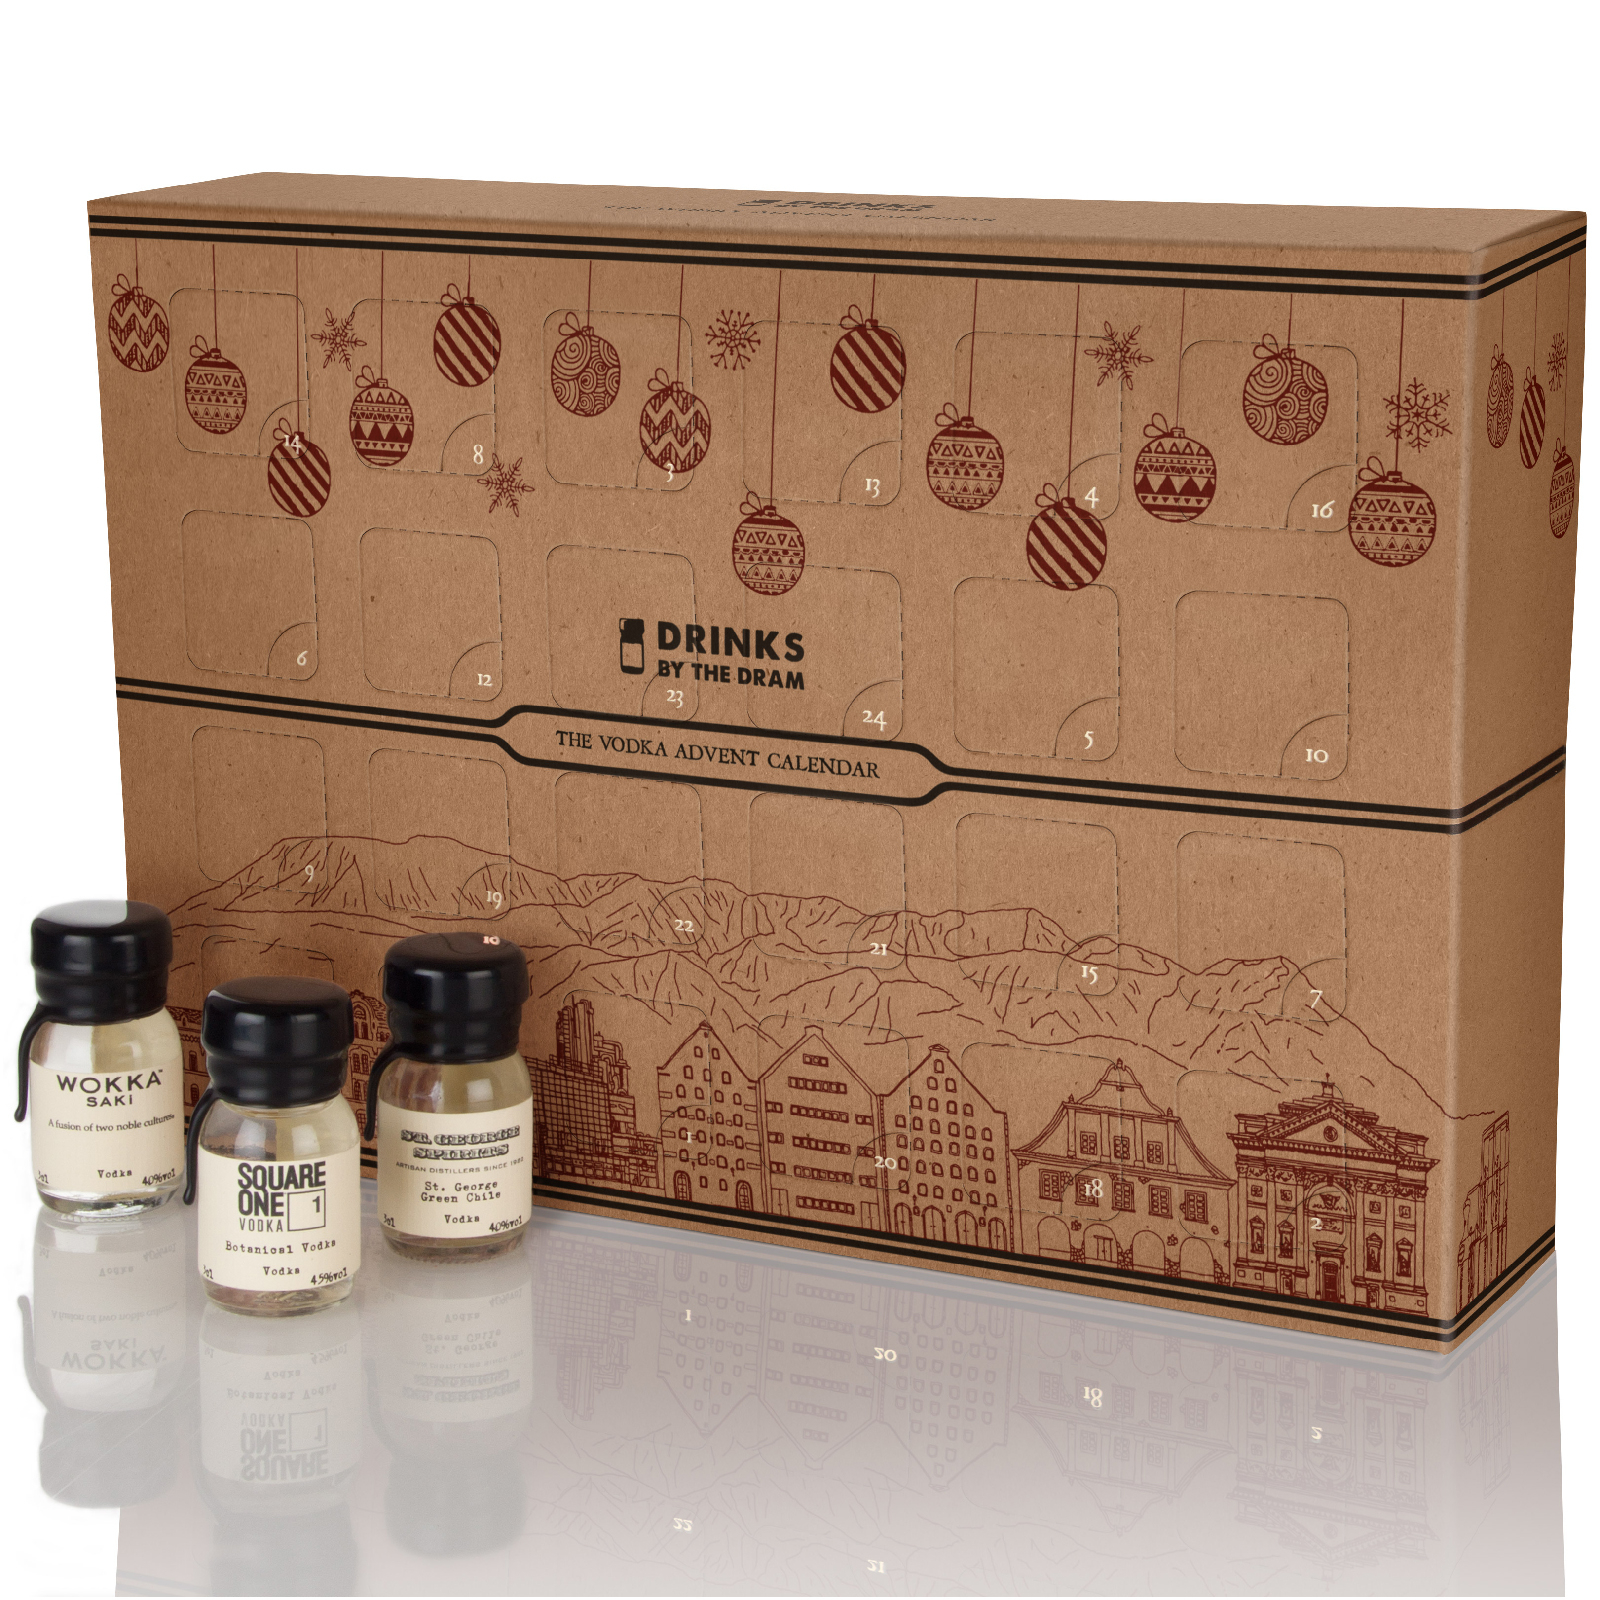 Drinks by the Dram The Vodka Advent Calendar